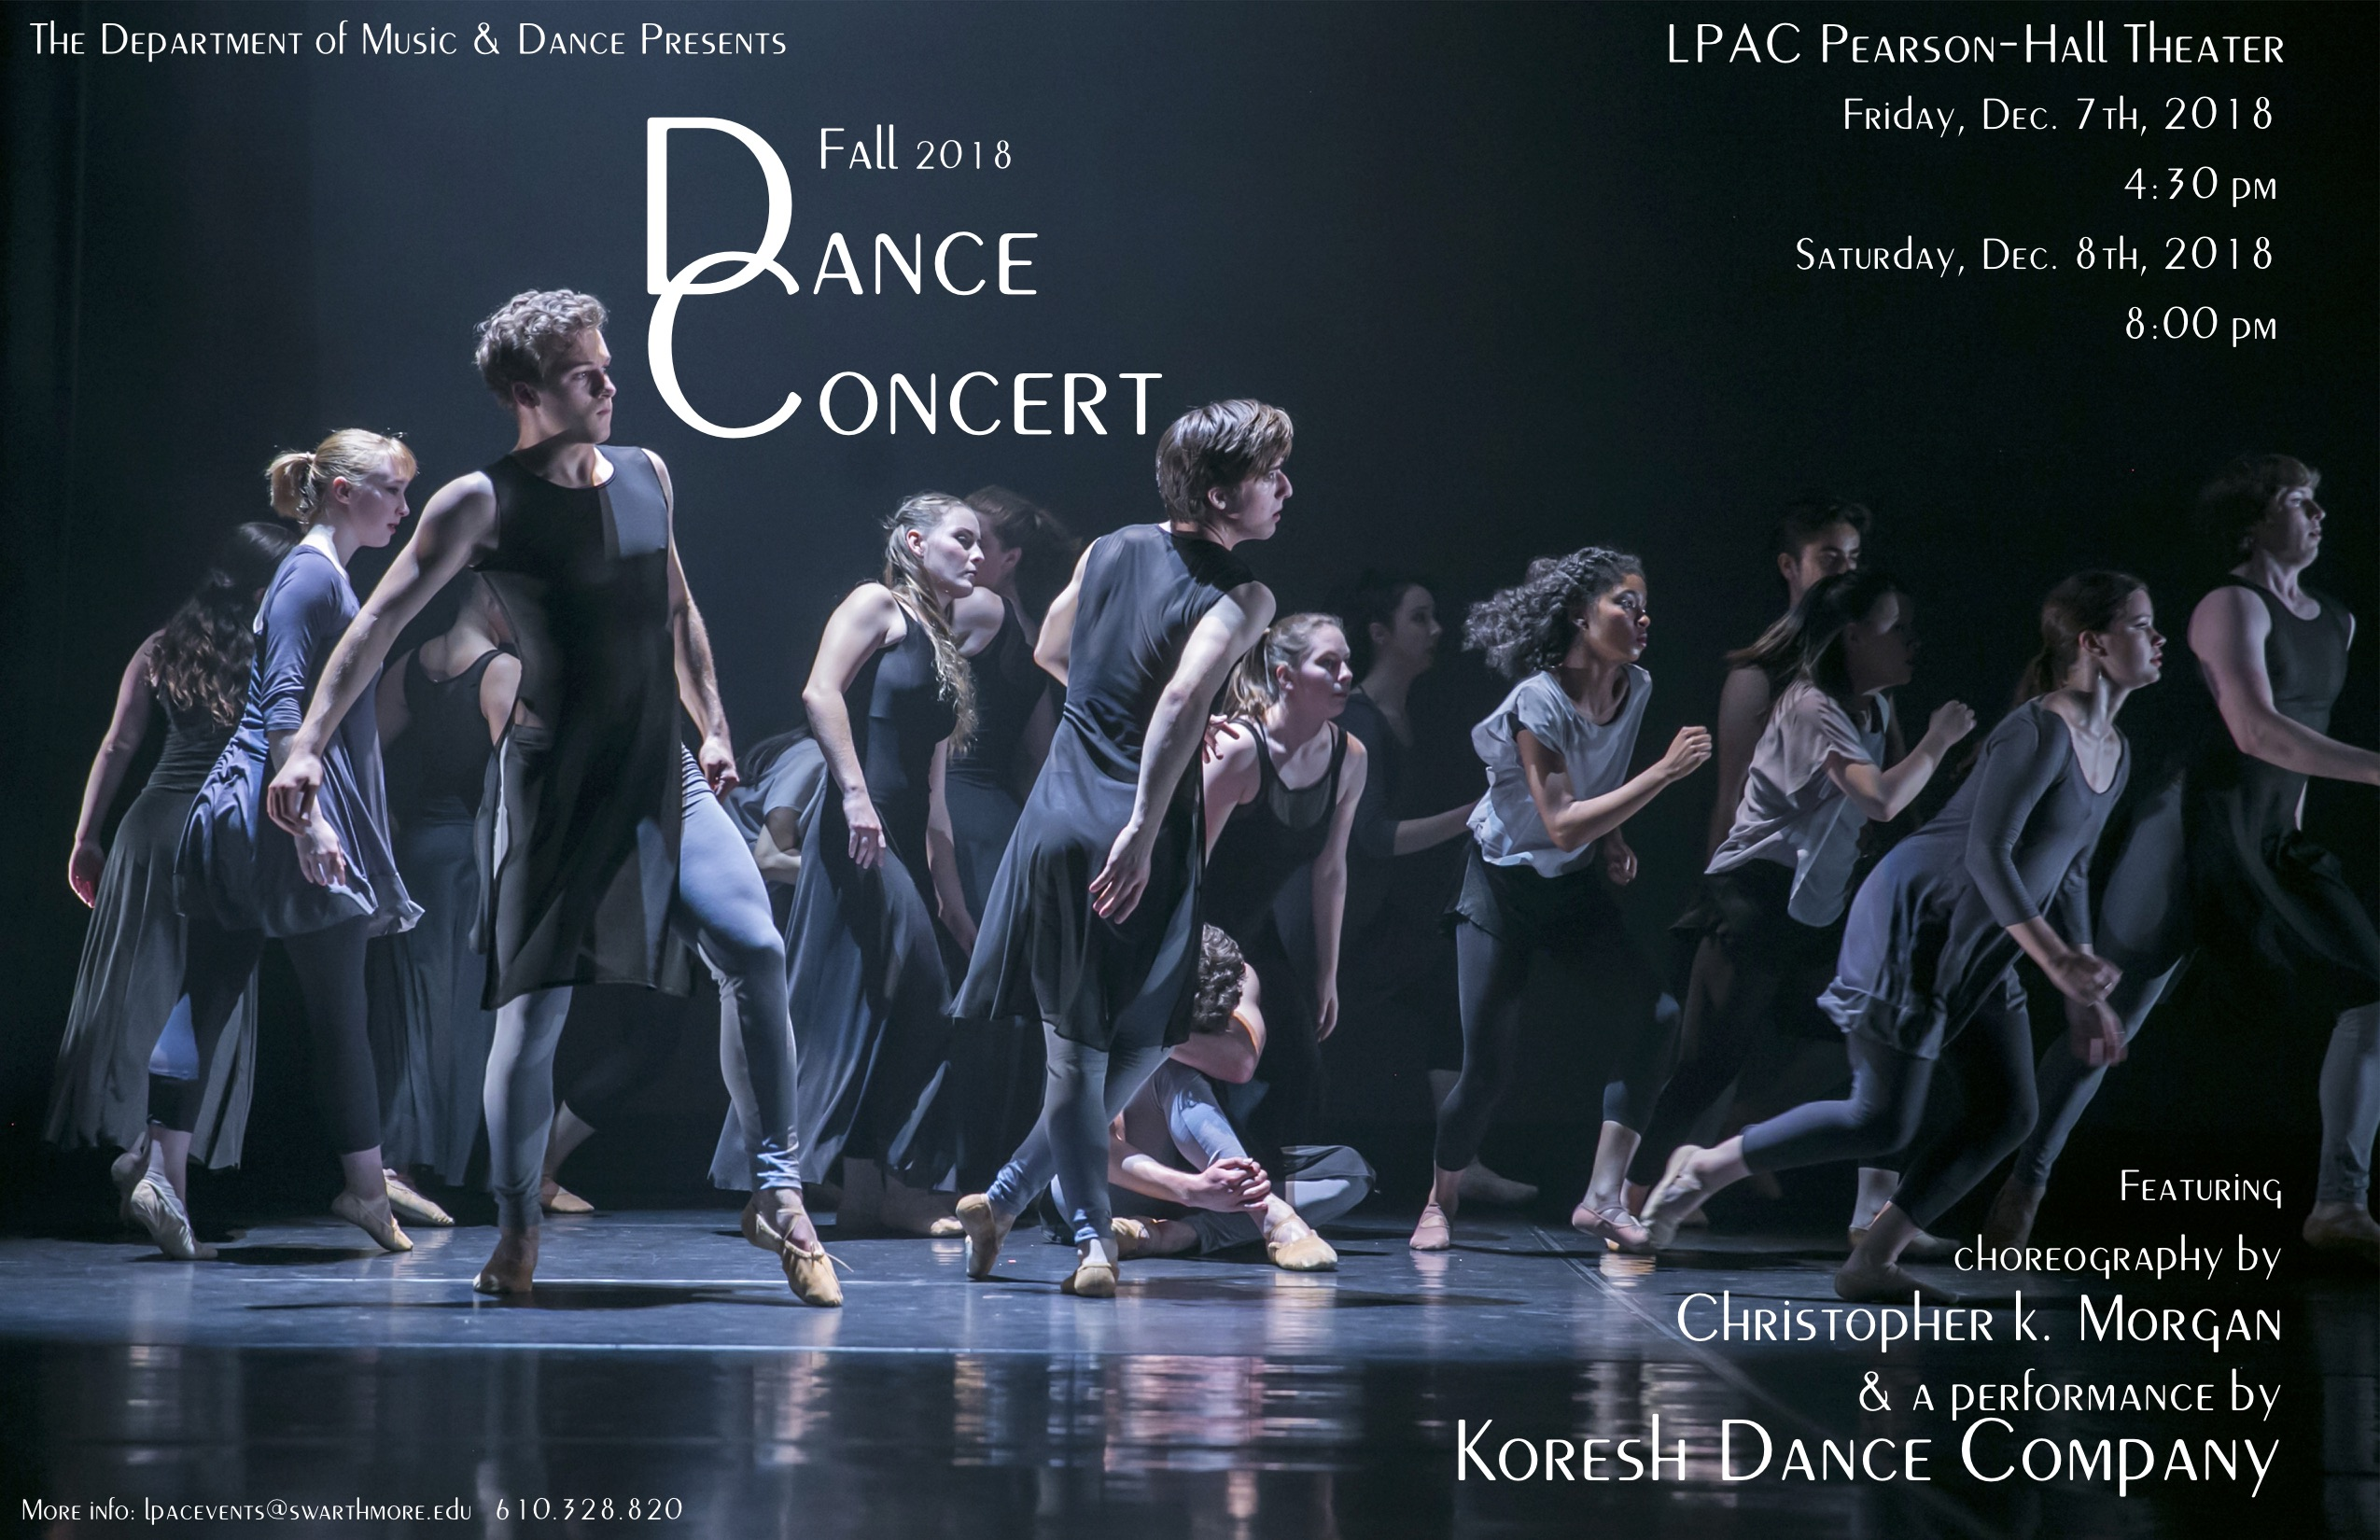 Concert Poster with Student Dancers